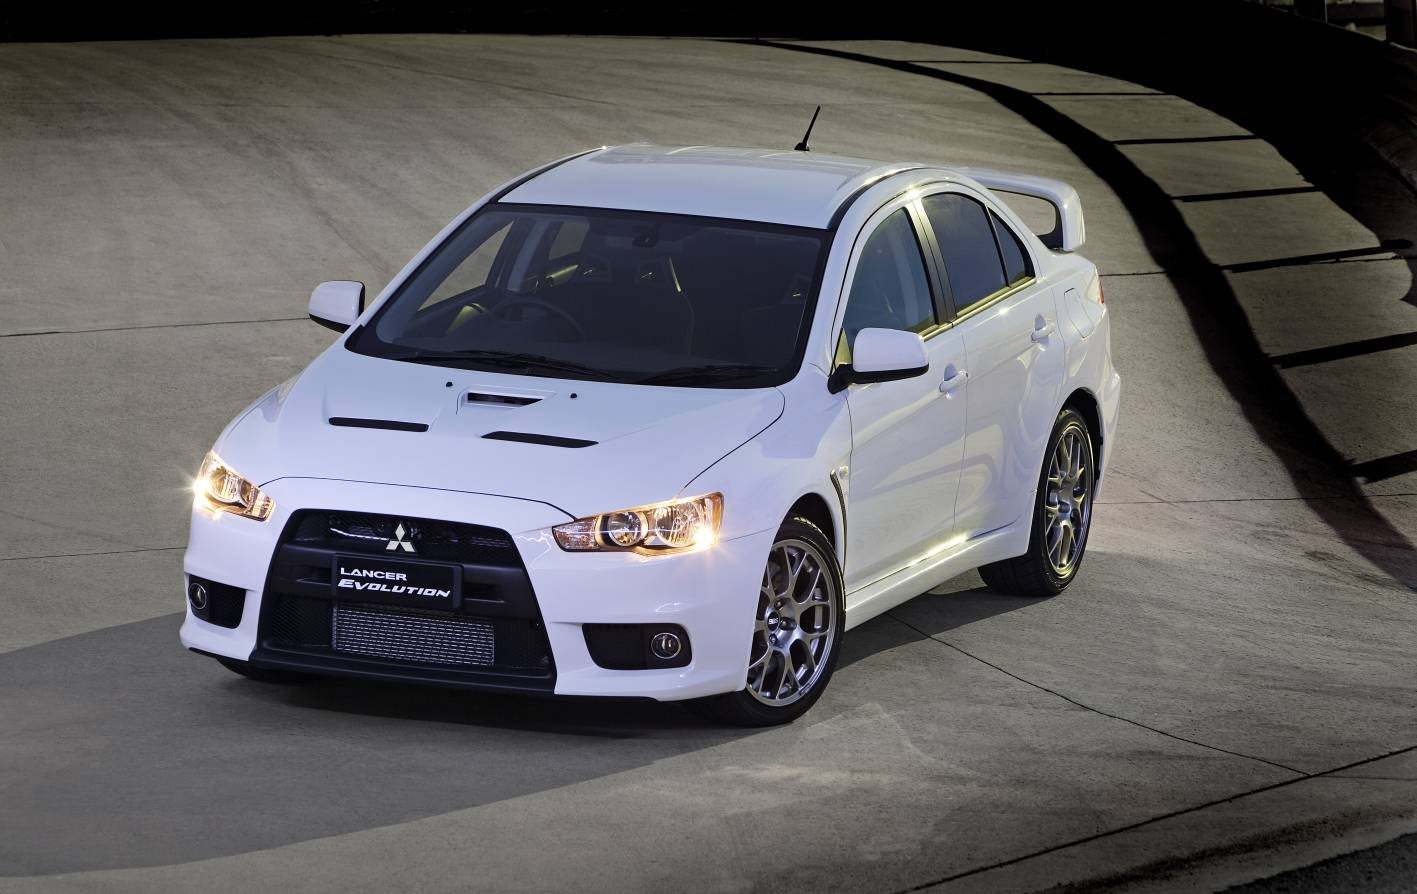 mitsubishi lancer evolution x archives performancedrive. Black Bedroom Furniture Sets. Home Design Ideas